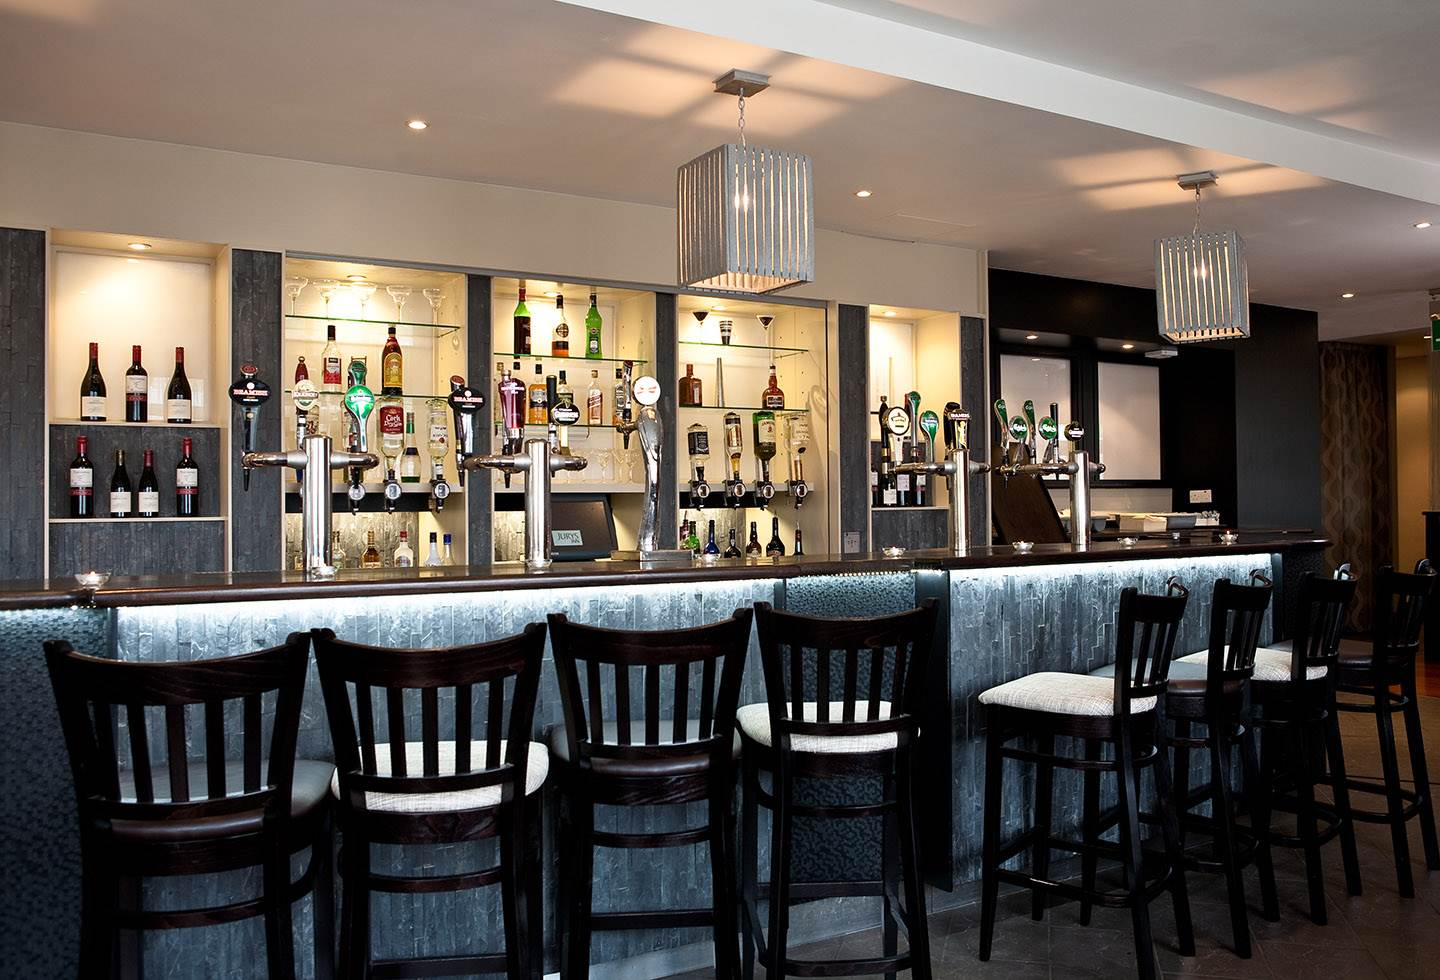 Jurys Inn Cork Bar